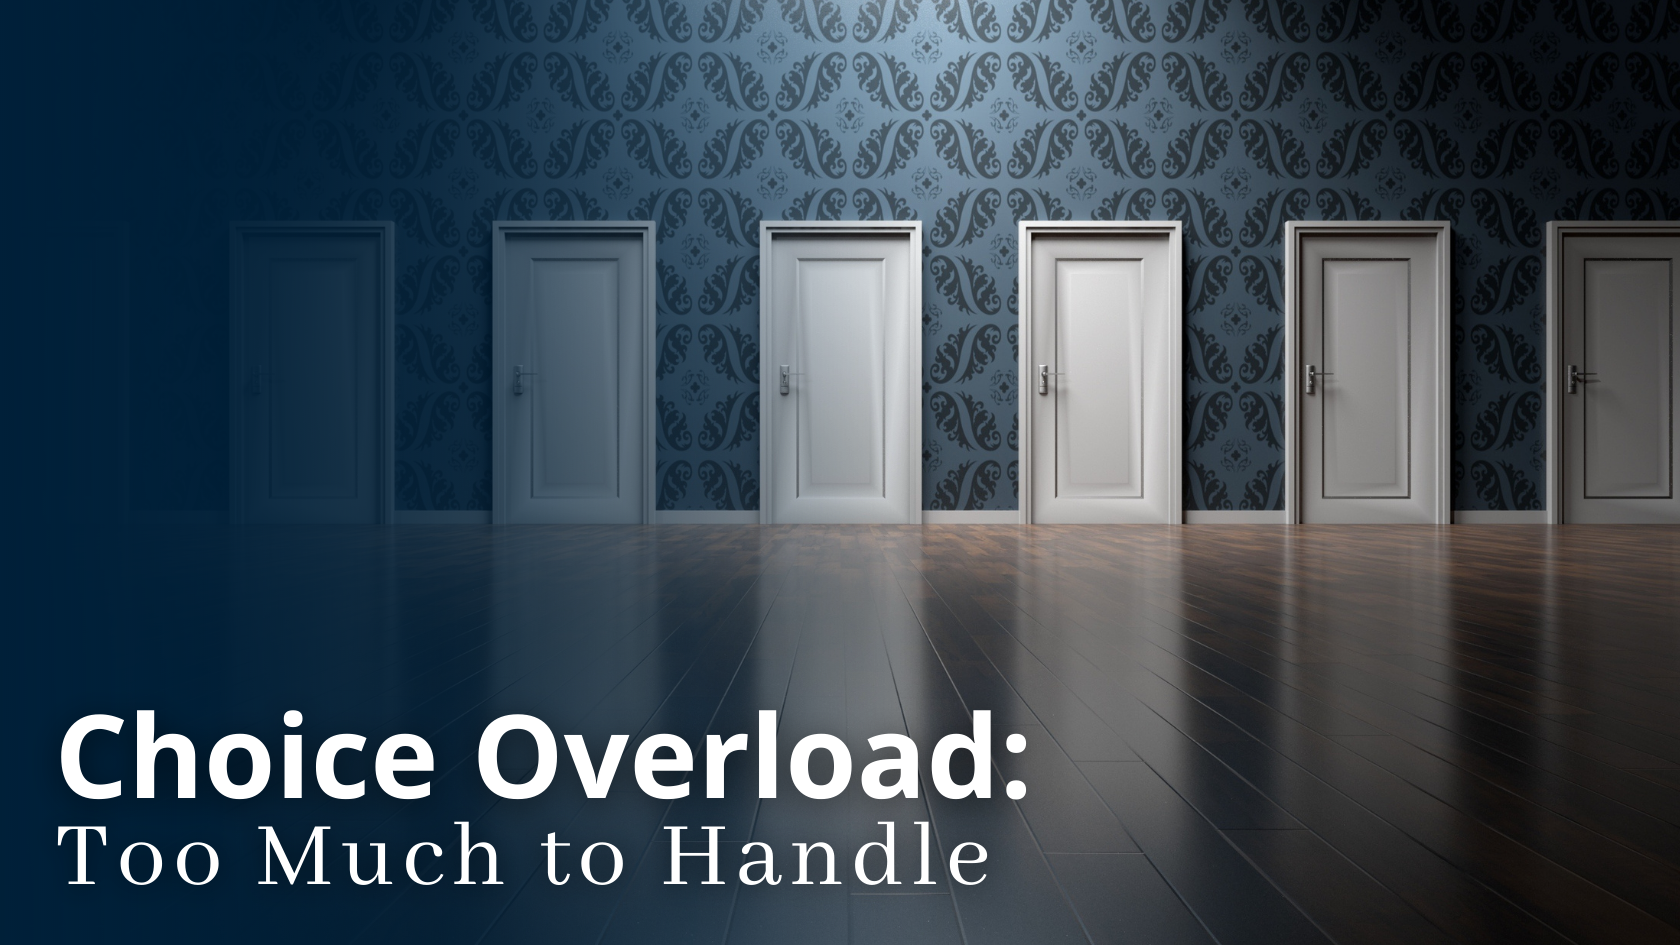 Choice Overload Too Much to Handle - Strategies by Design